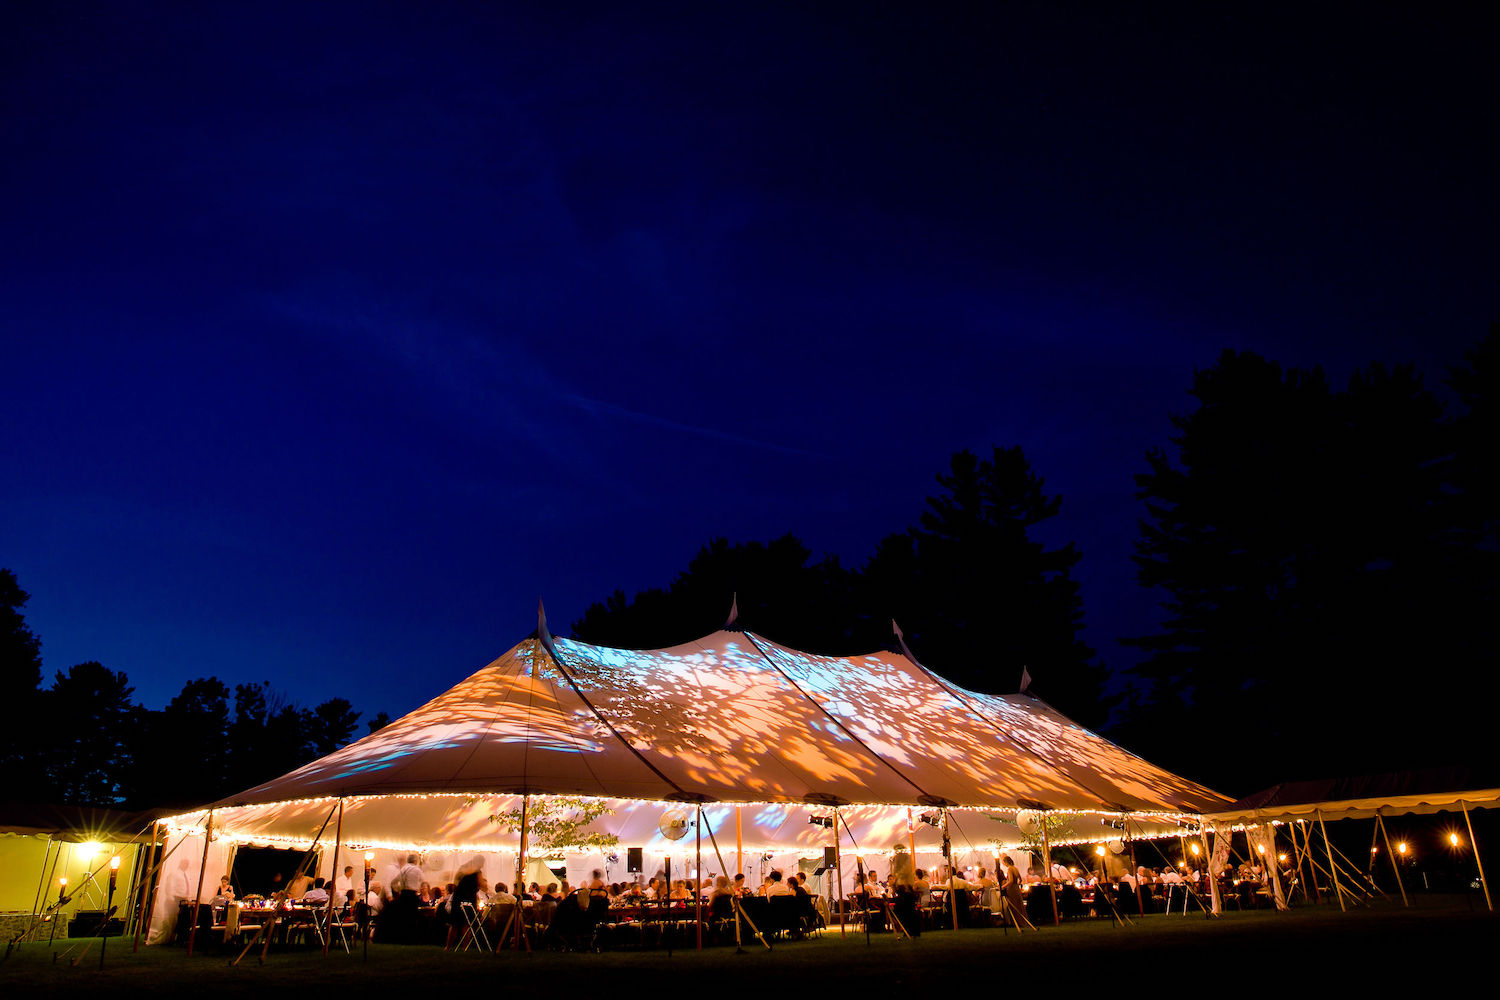 Wedding tent at night – Special event tent lit up from the inside with dark blue night time sky and trees